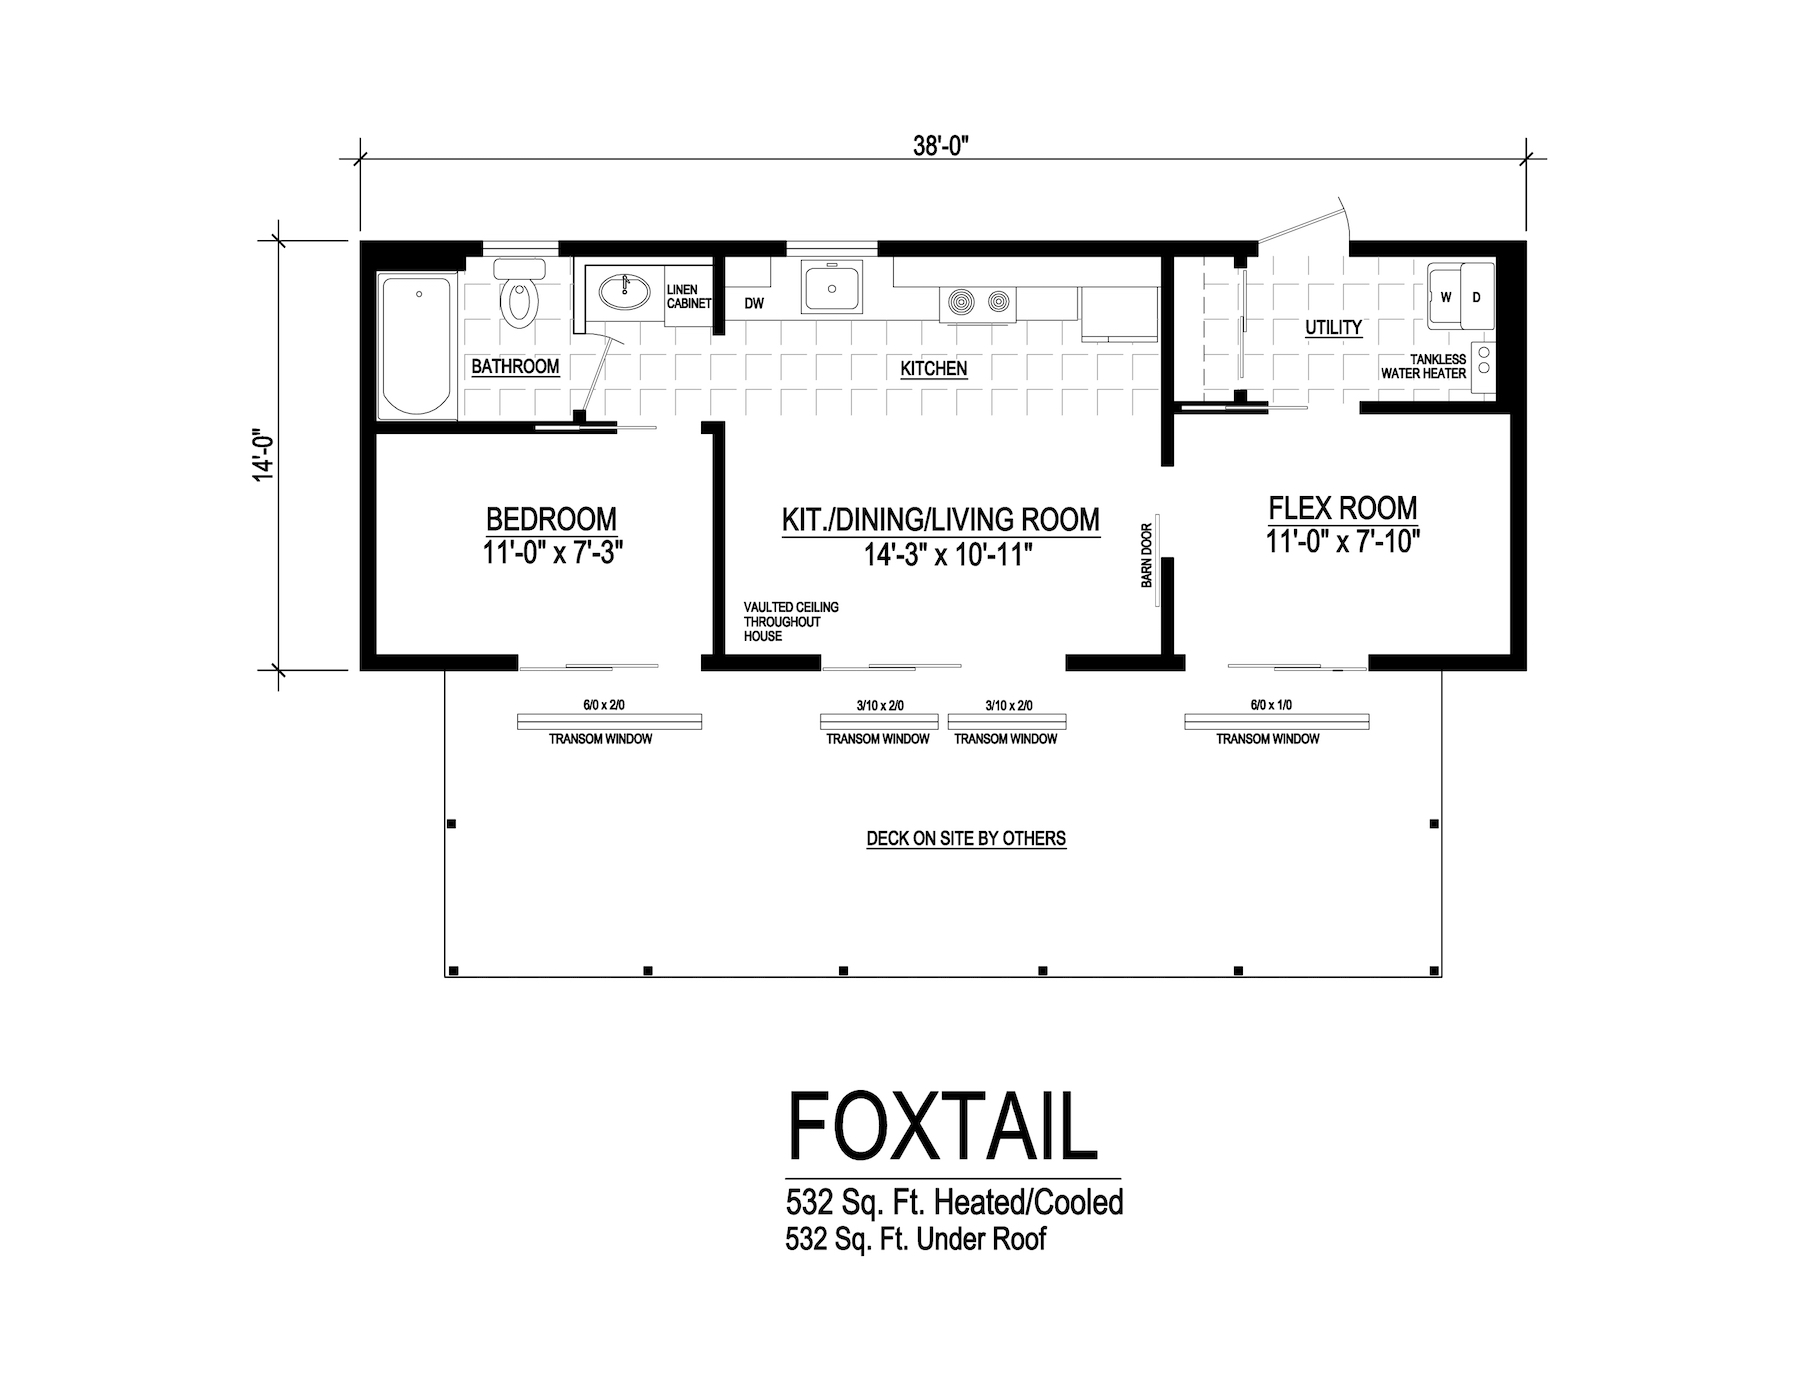 foxtail modular home floorplan